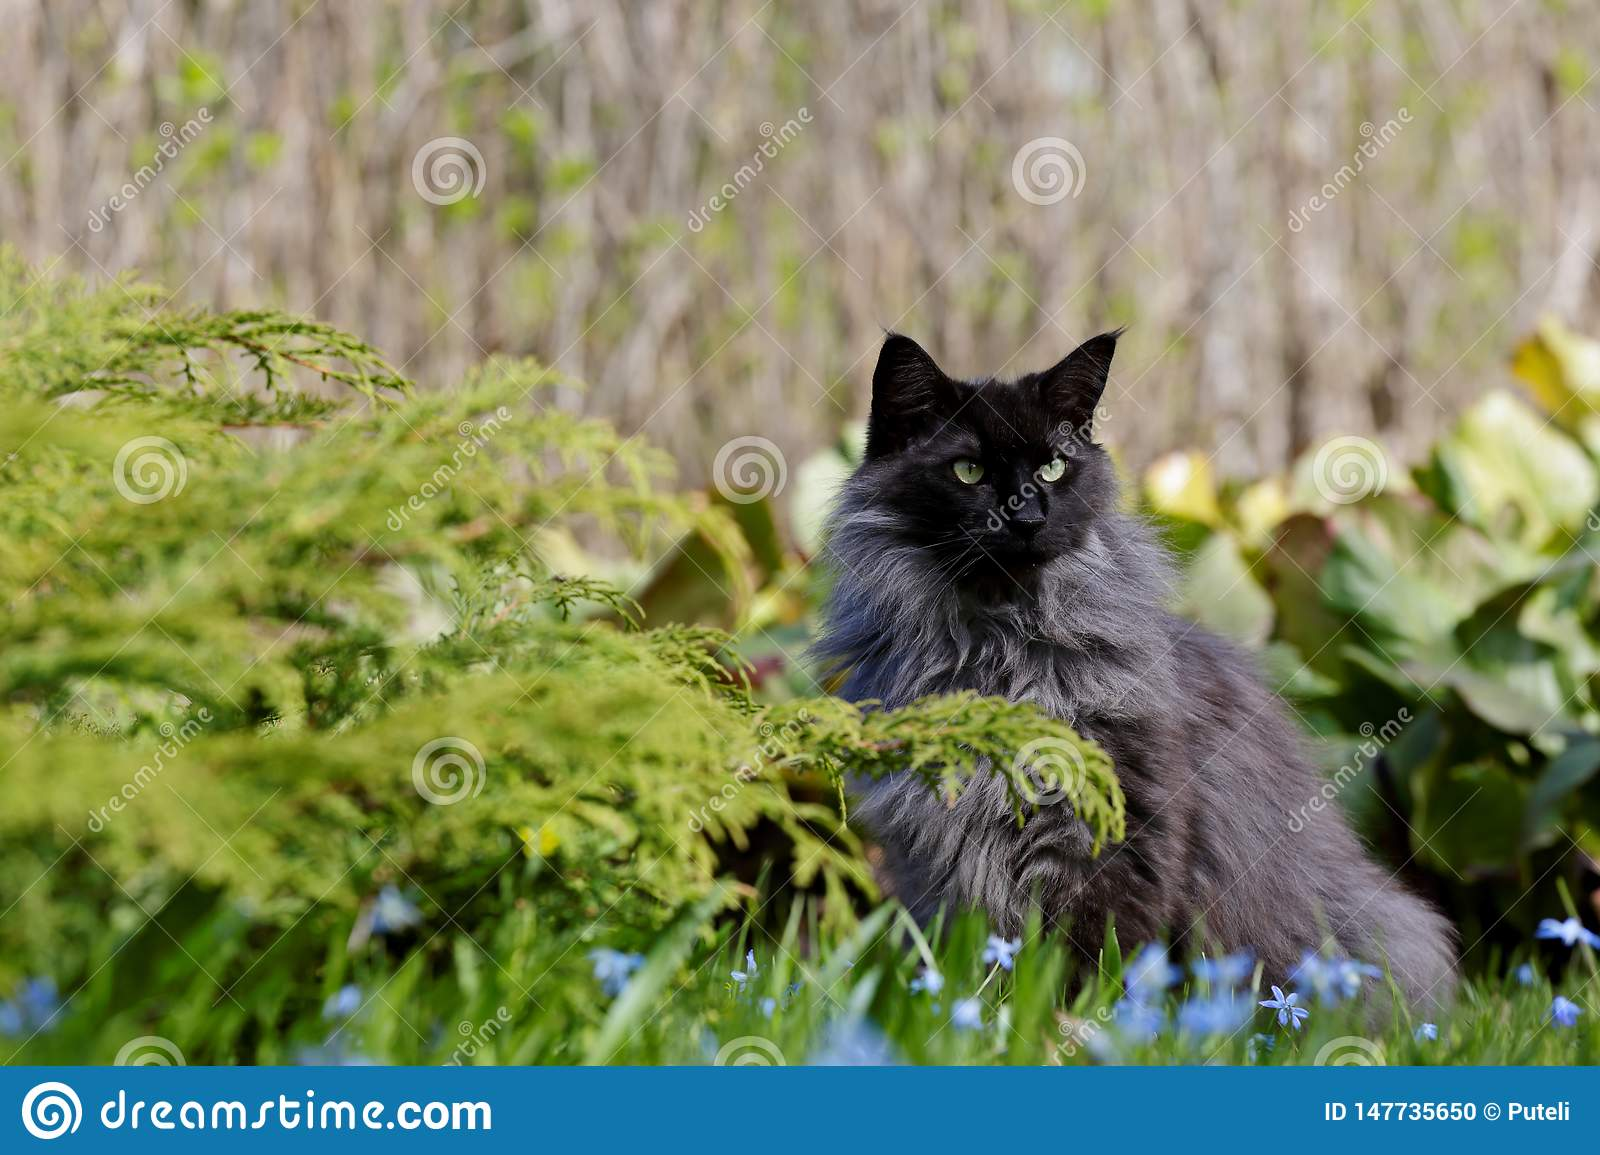 A Norwegian Forest Cat Male In Garden With Blue Flowers Stock Photo Image Of Grass Face 147735650